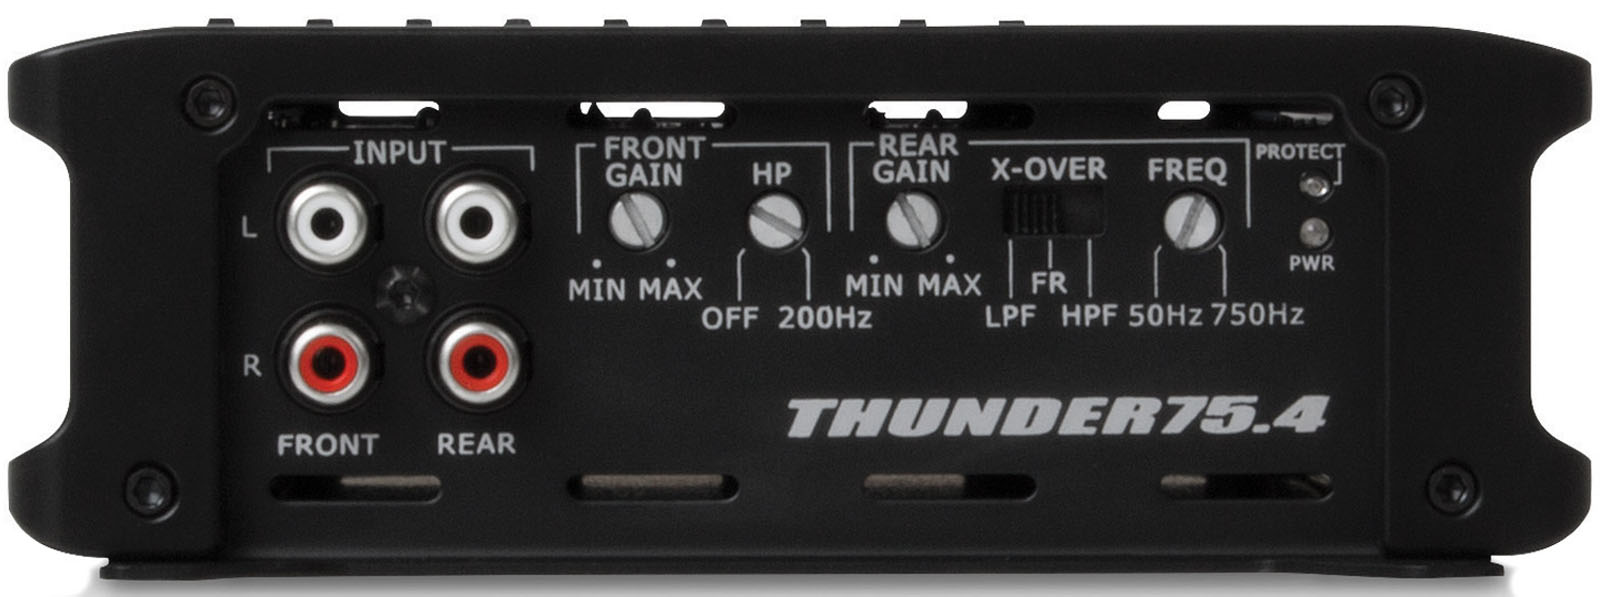 hight resolution of mtx audio thunder75 4 4 channel amplifier